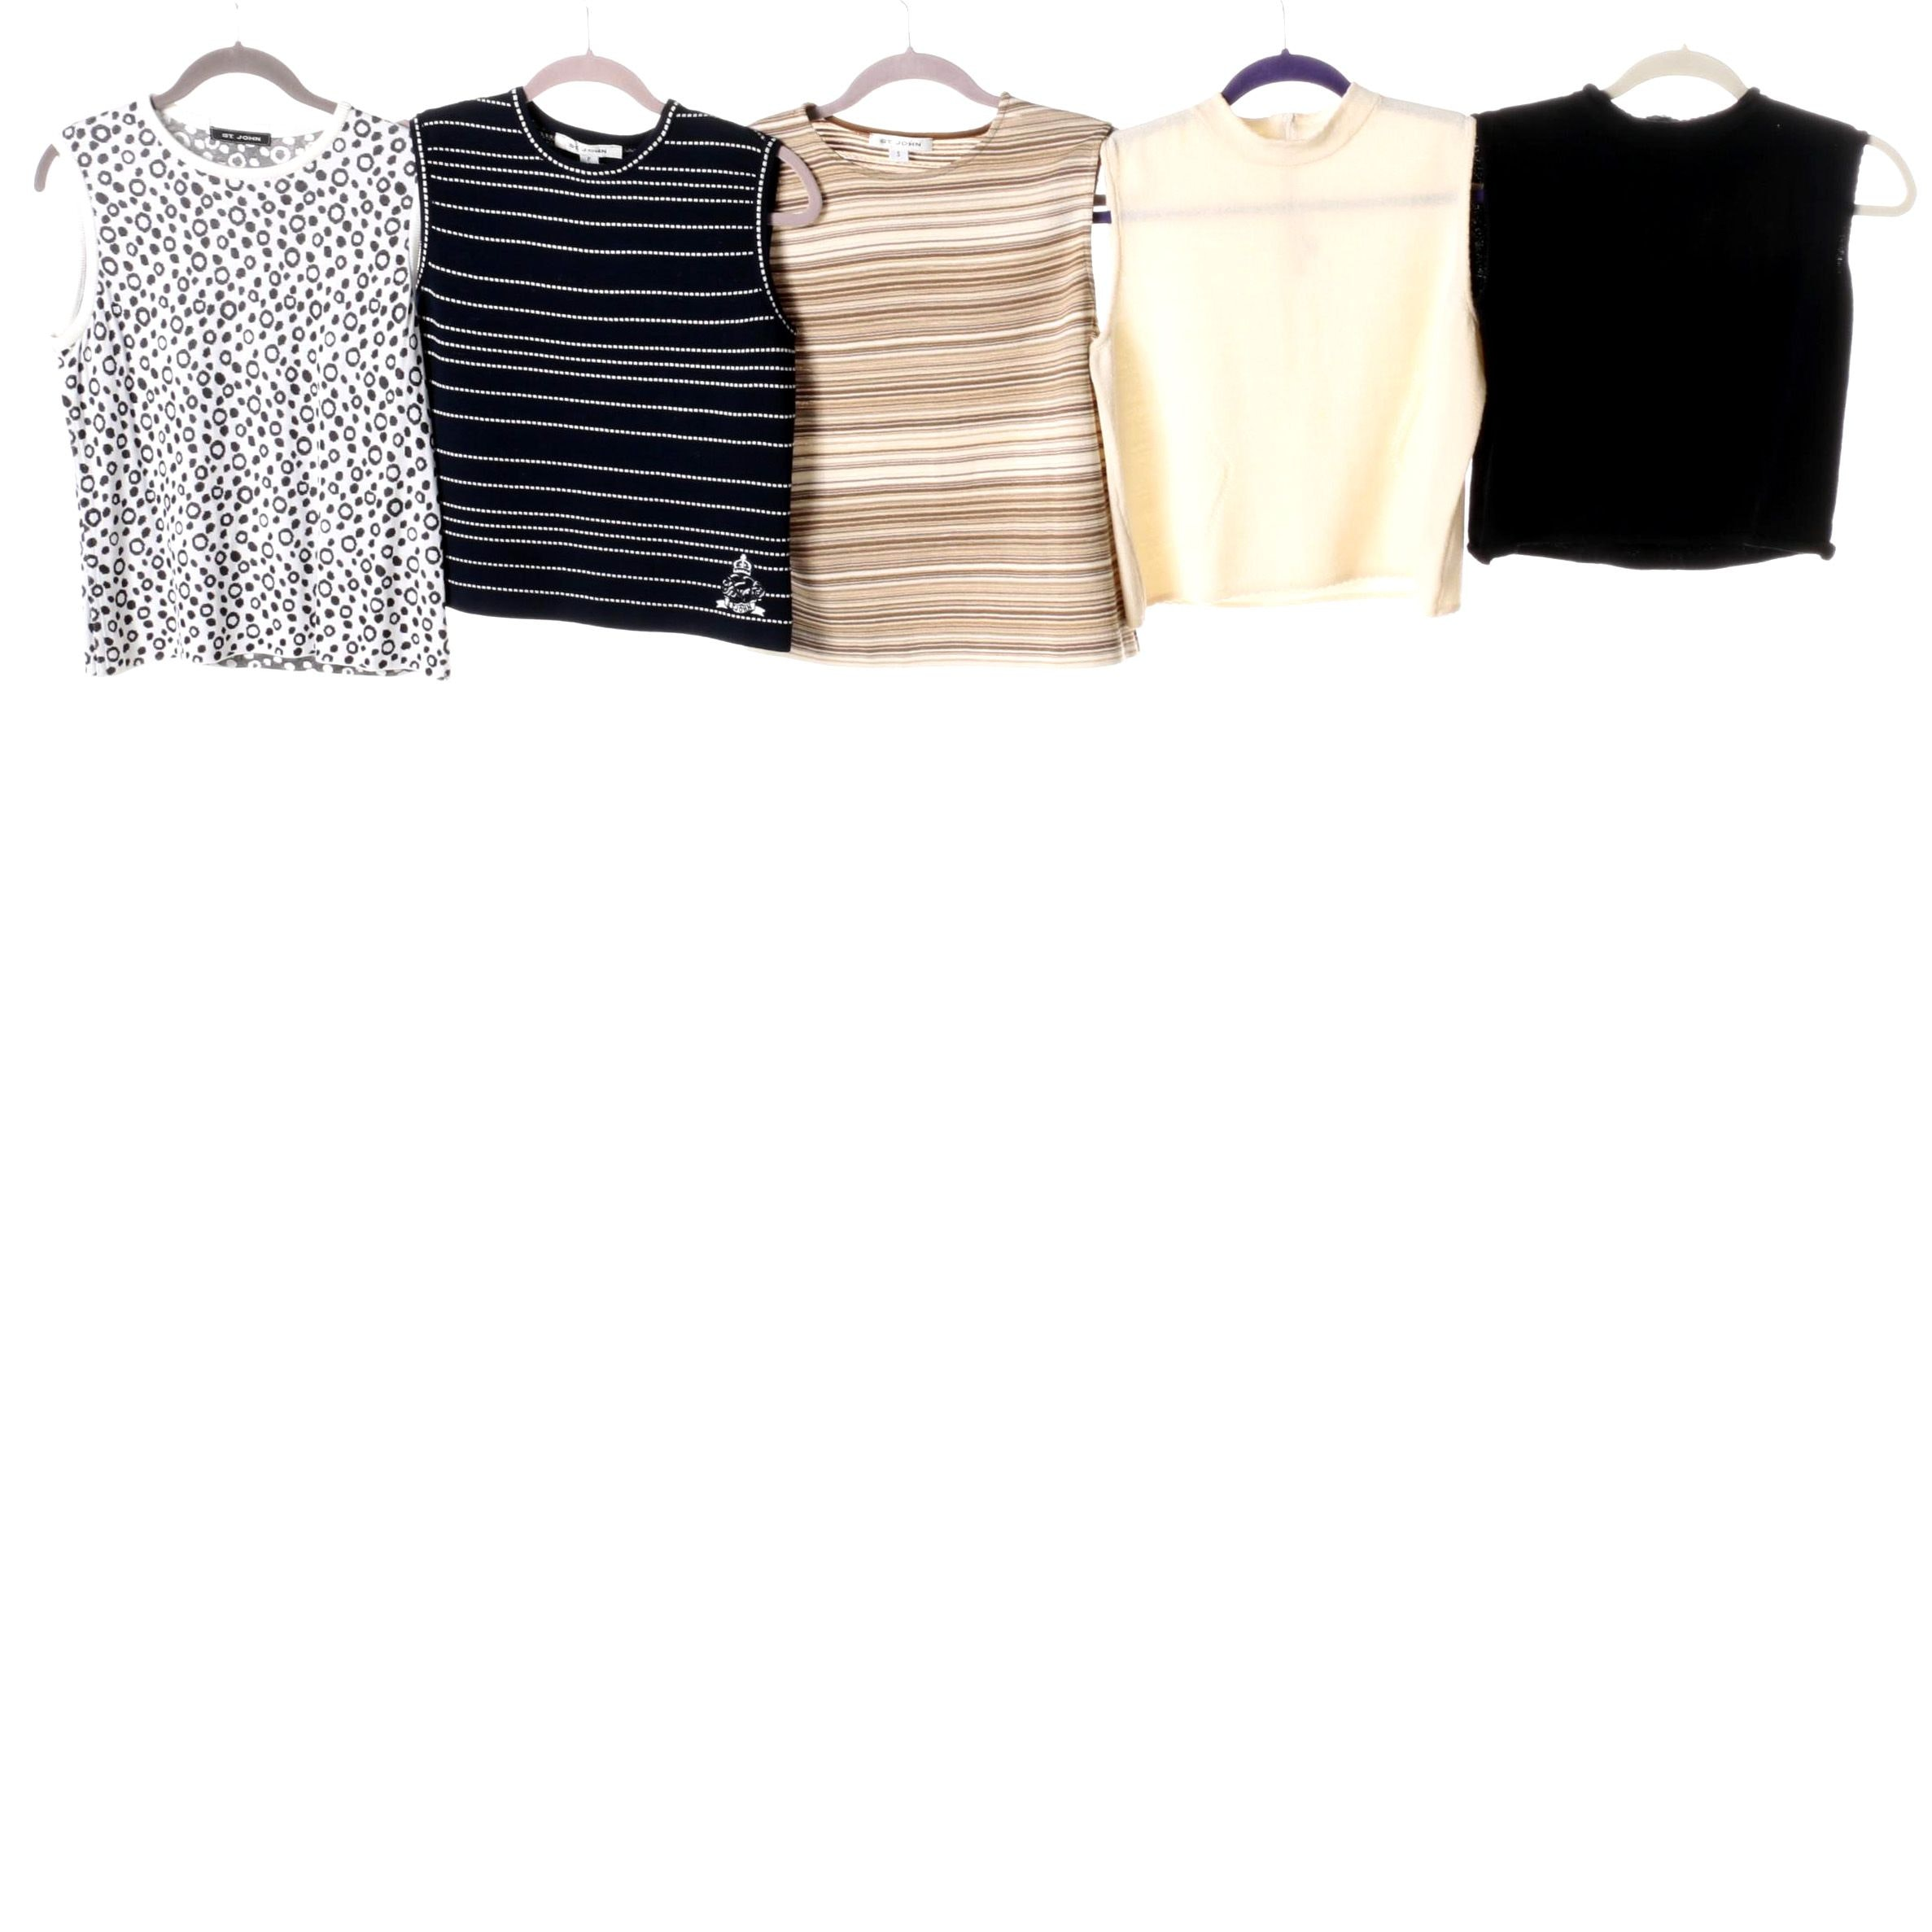 St. John Sleeveless Top Assortment